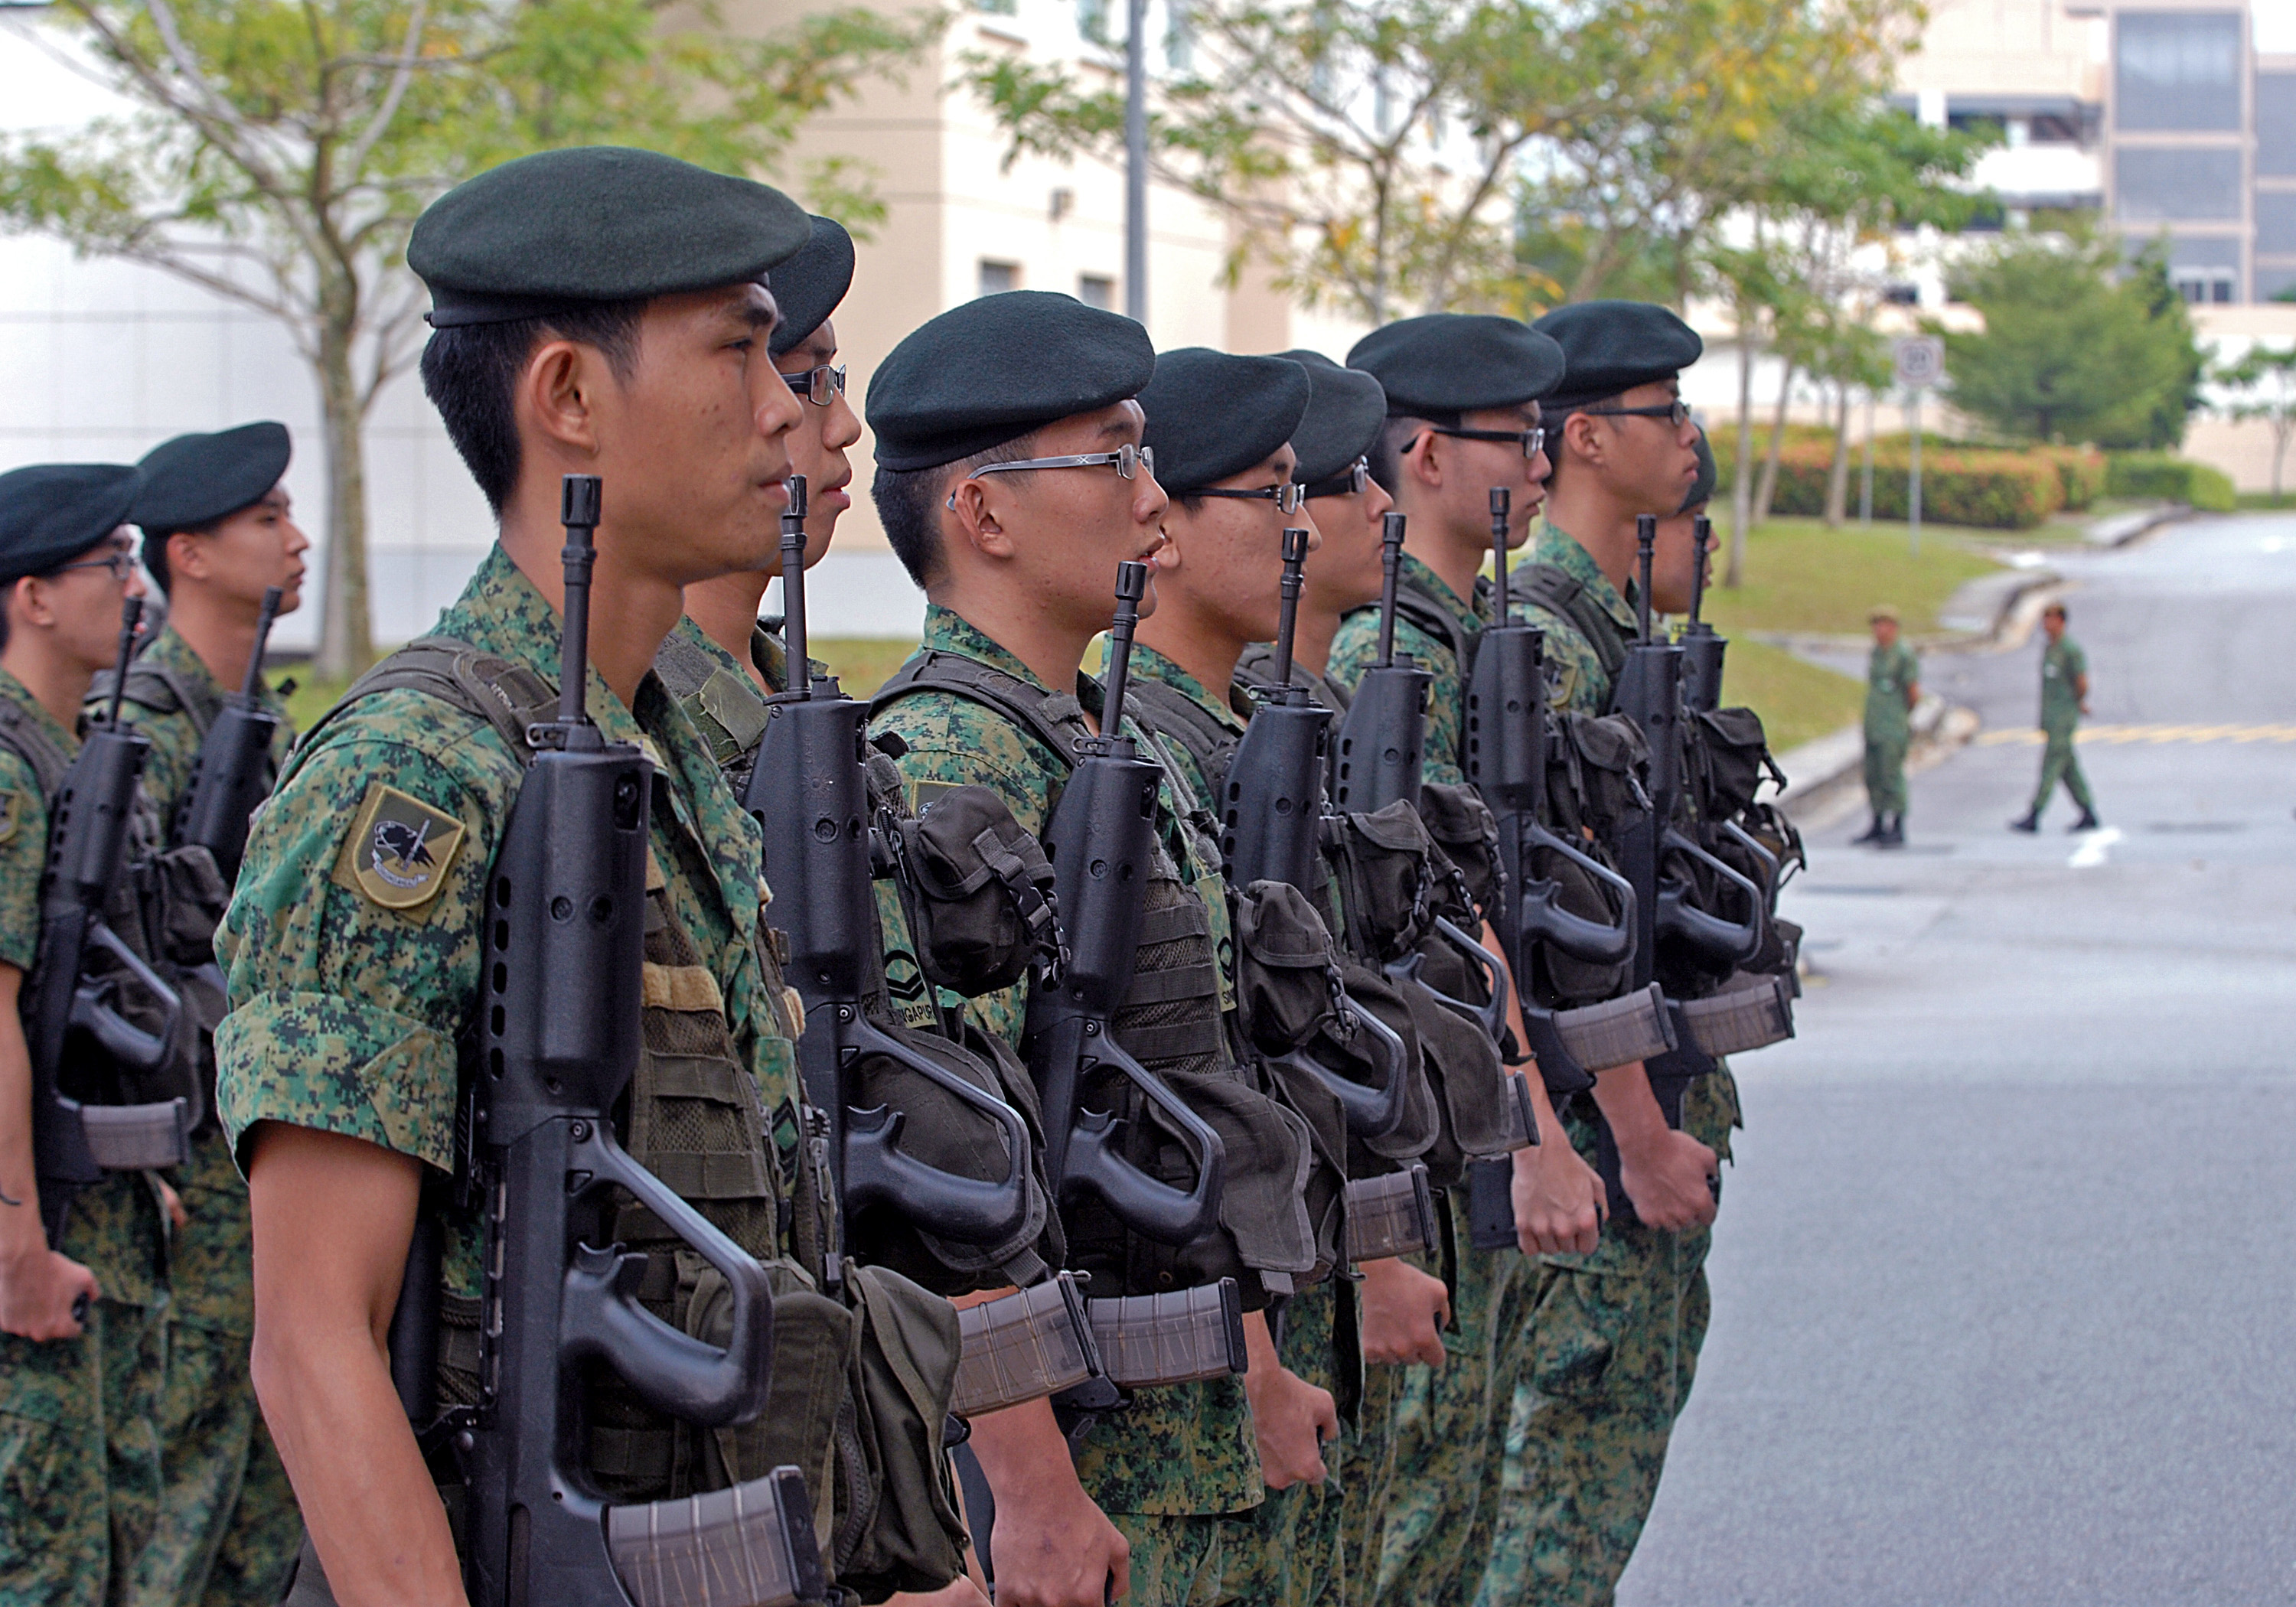 Singapore to issue 8,000 iPads to new military recruits